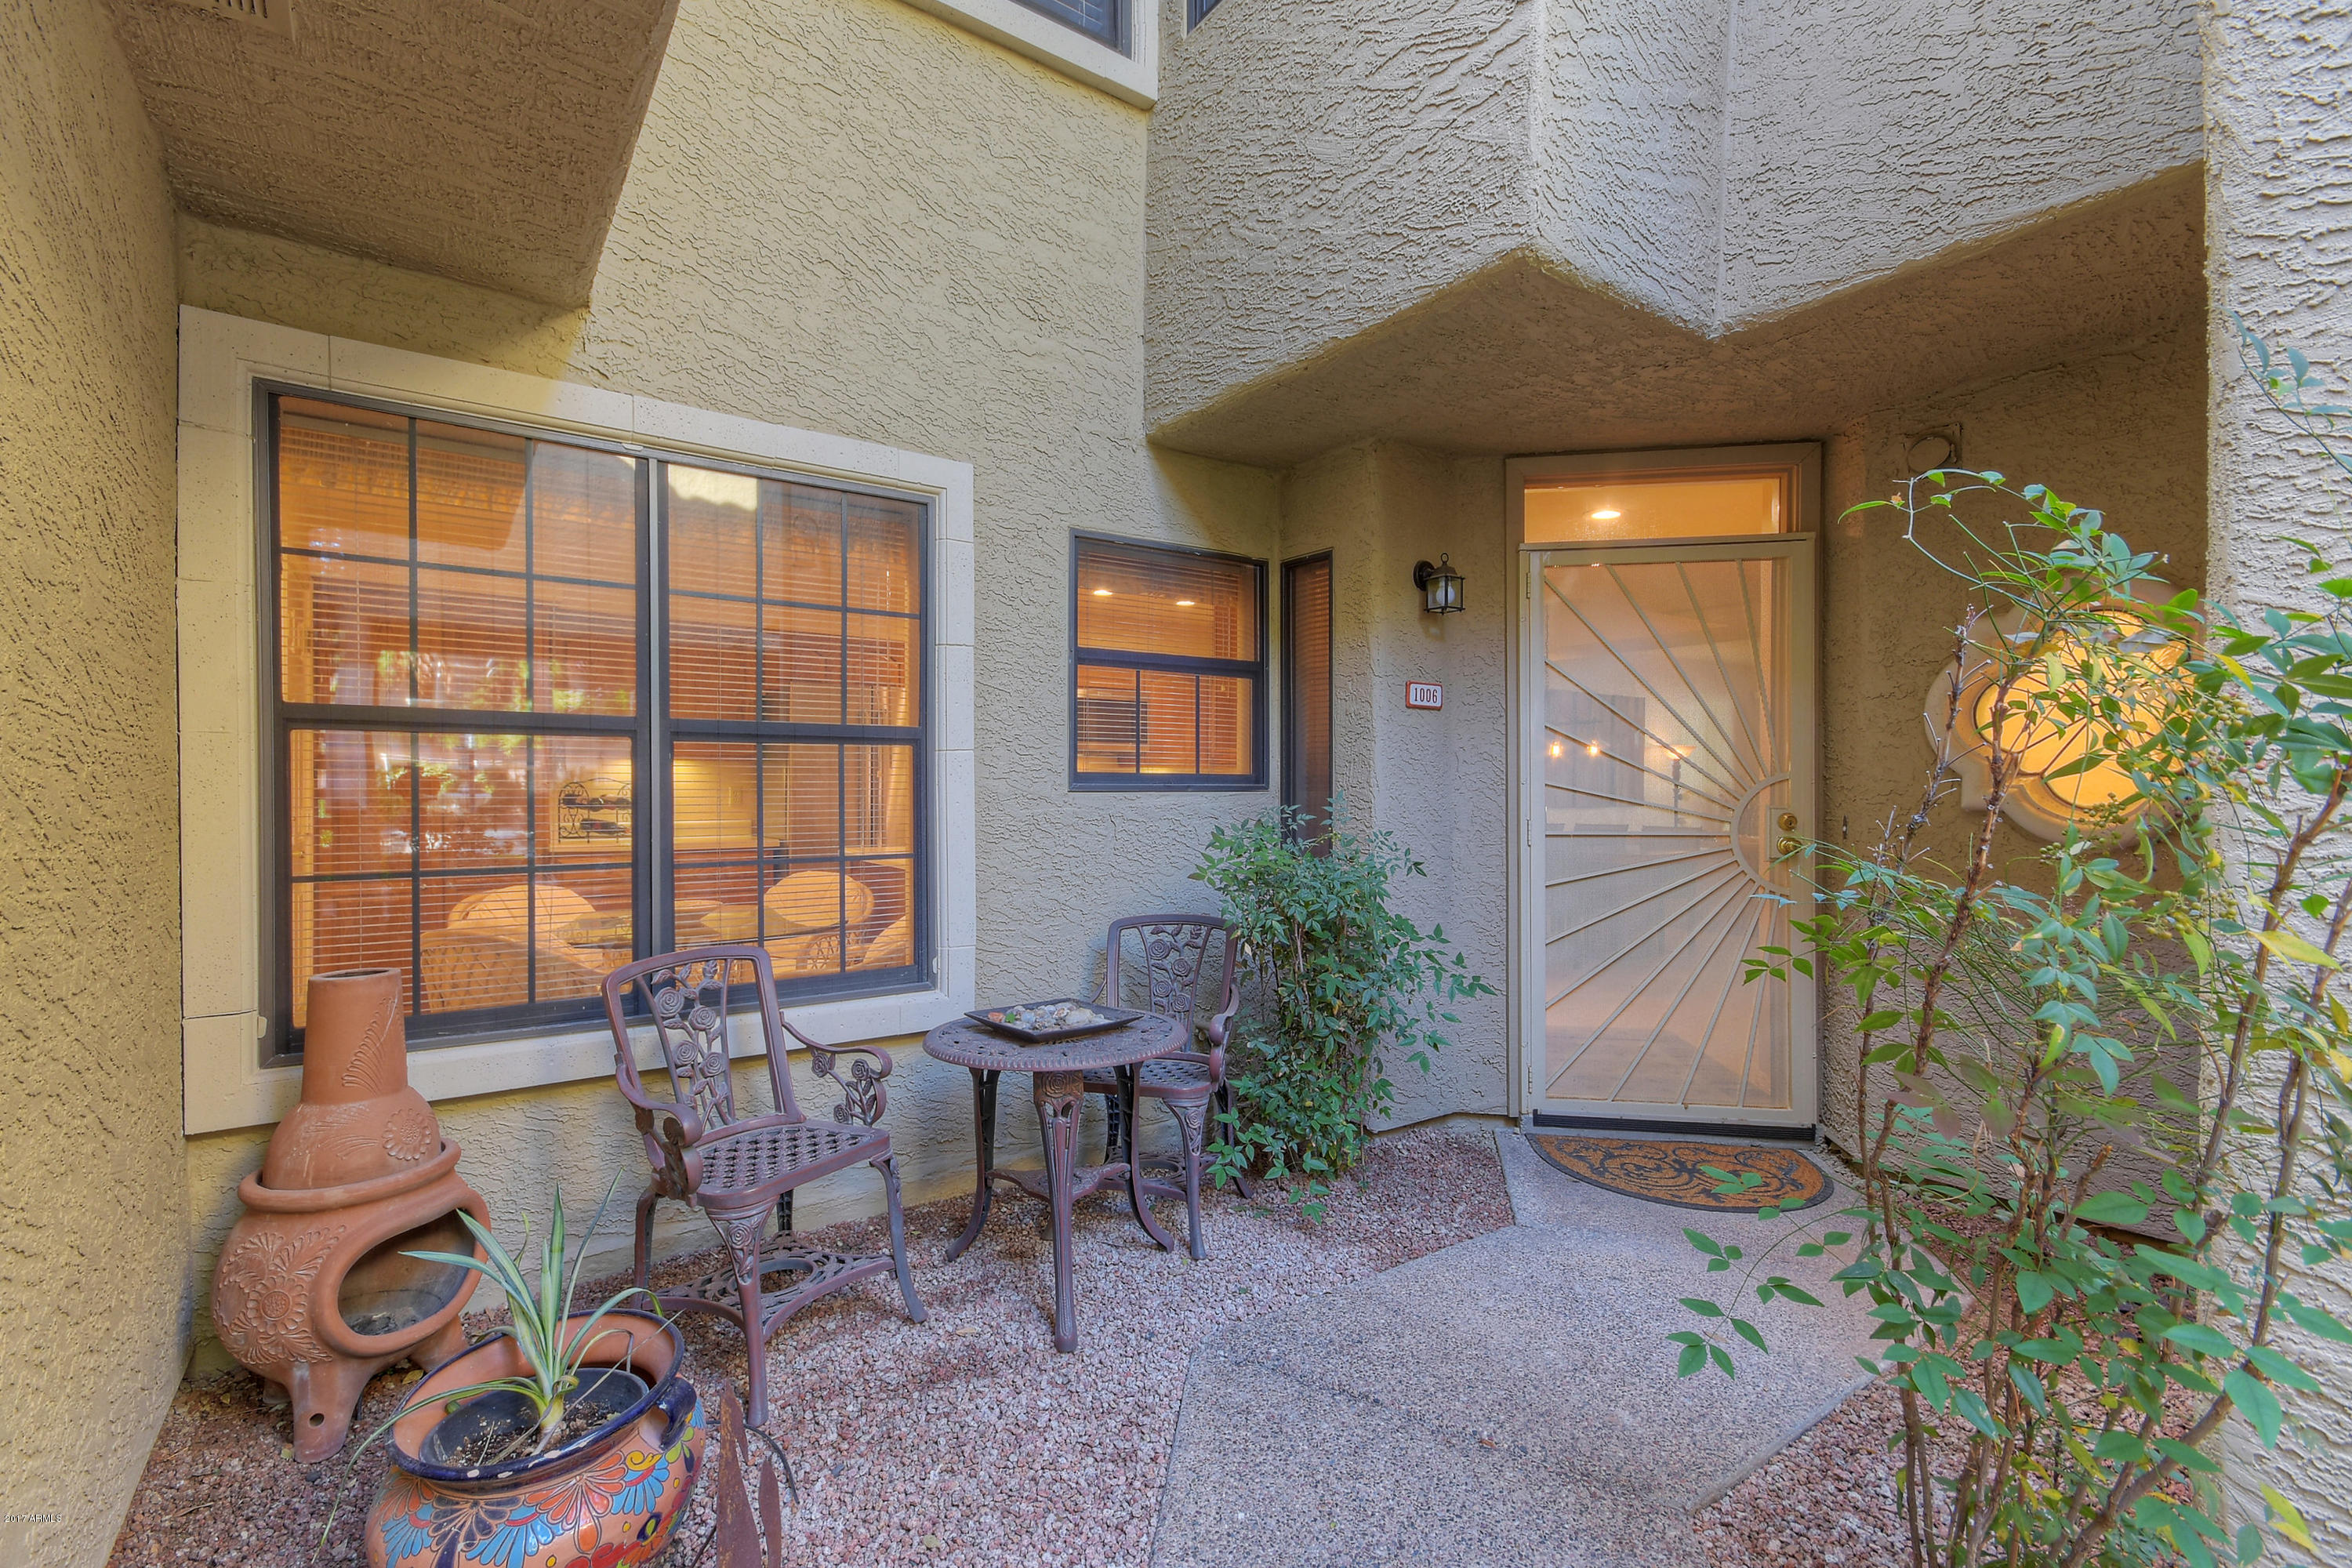 8300 E Via De Ventura Street, Unit 1006, Scottsdale AZ 85258 - Photo 2